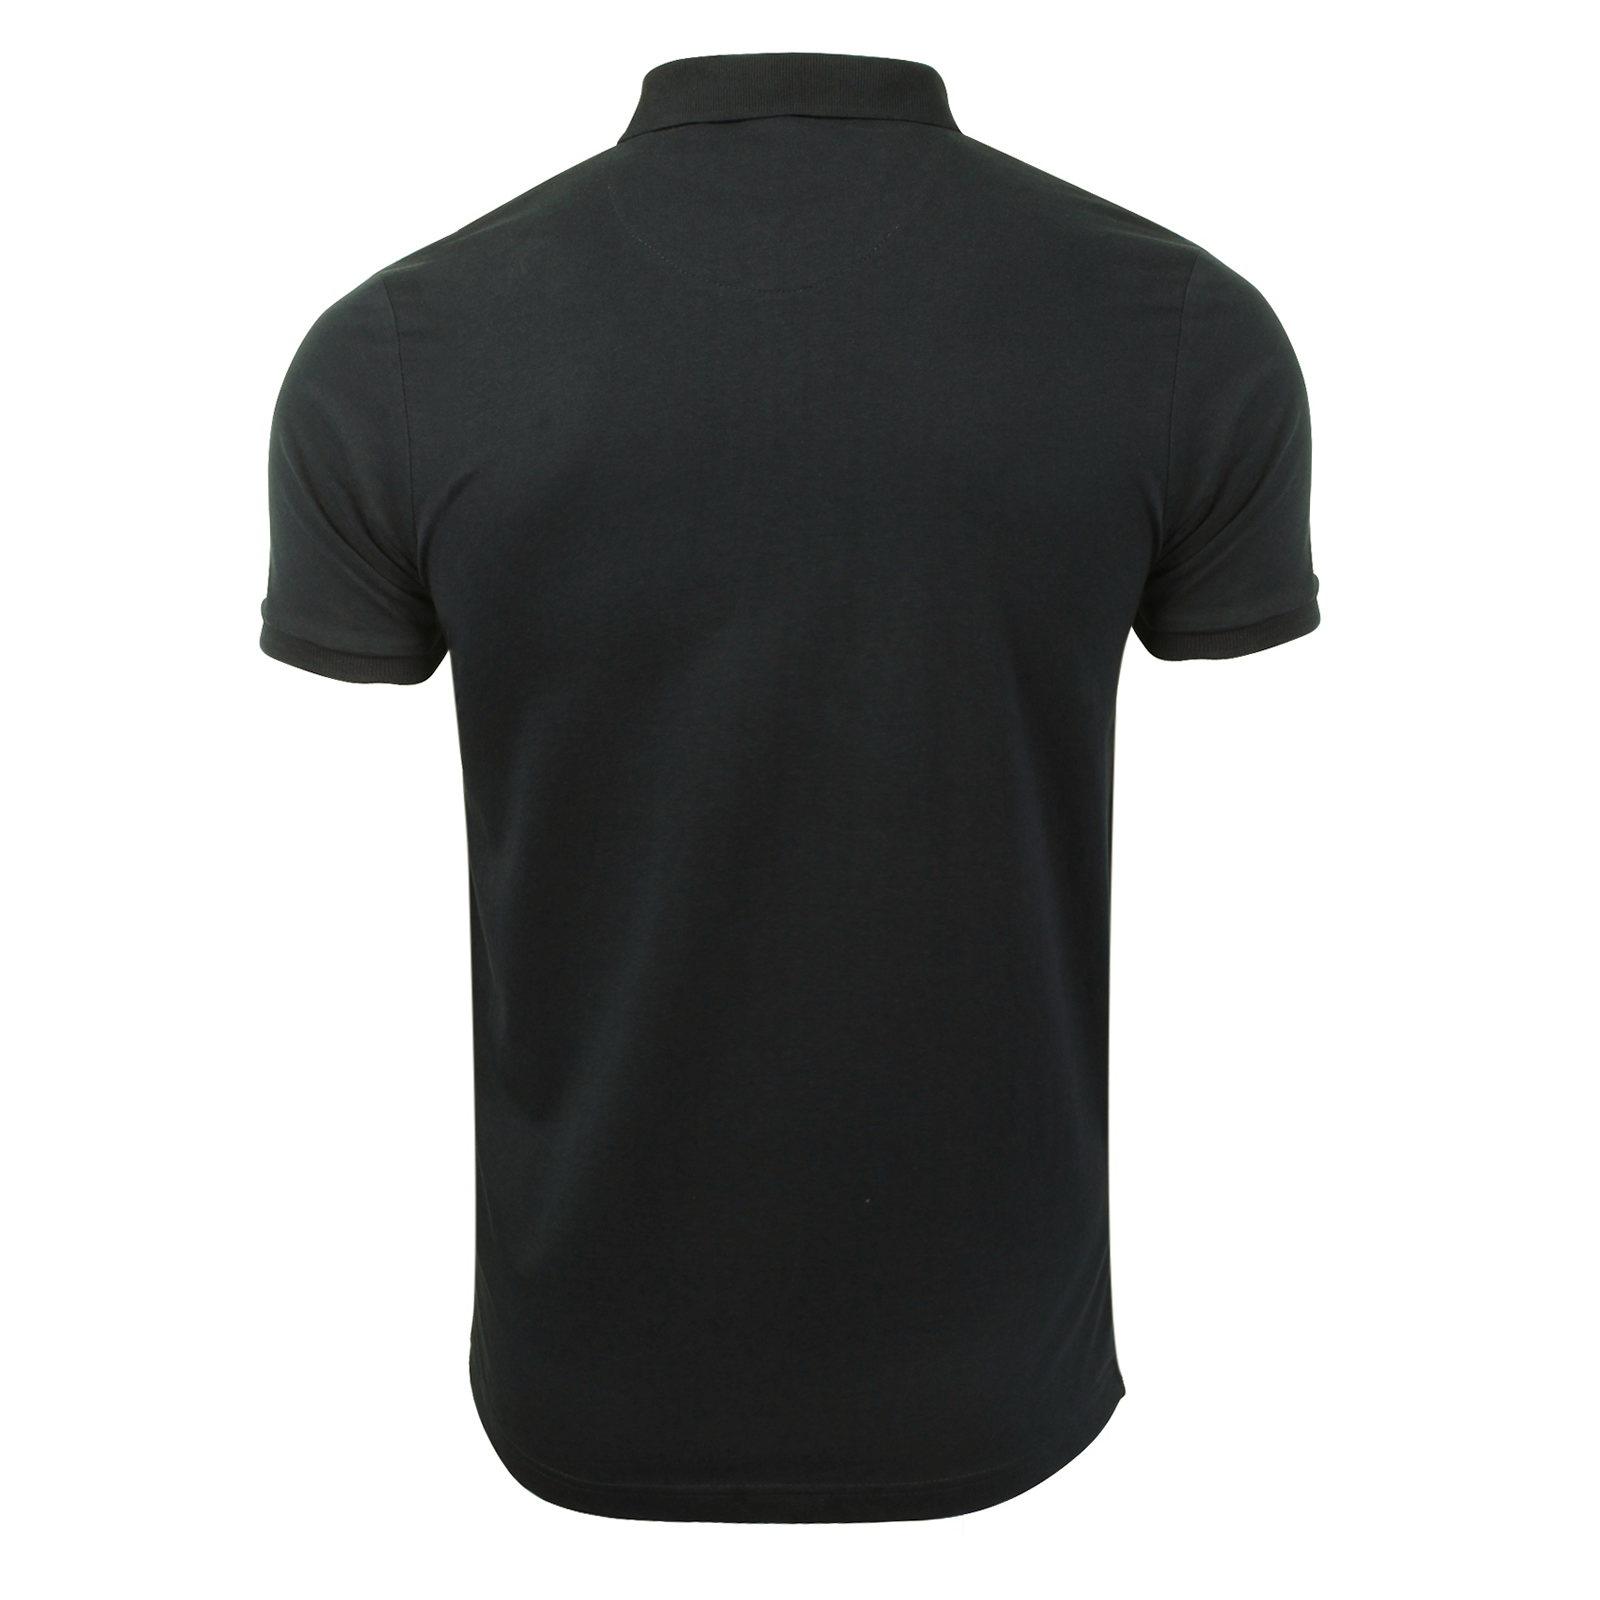 Mens-Polo-T-Shirt-Brave-Soul-Julius-Cotton-Collared-Short-Sleeve-Casual-Top thumbnail 3